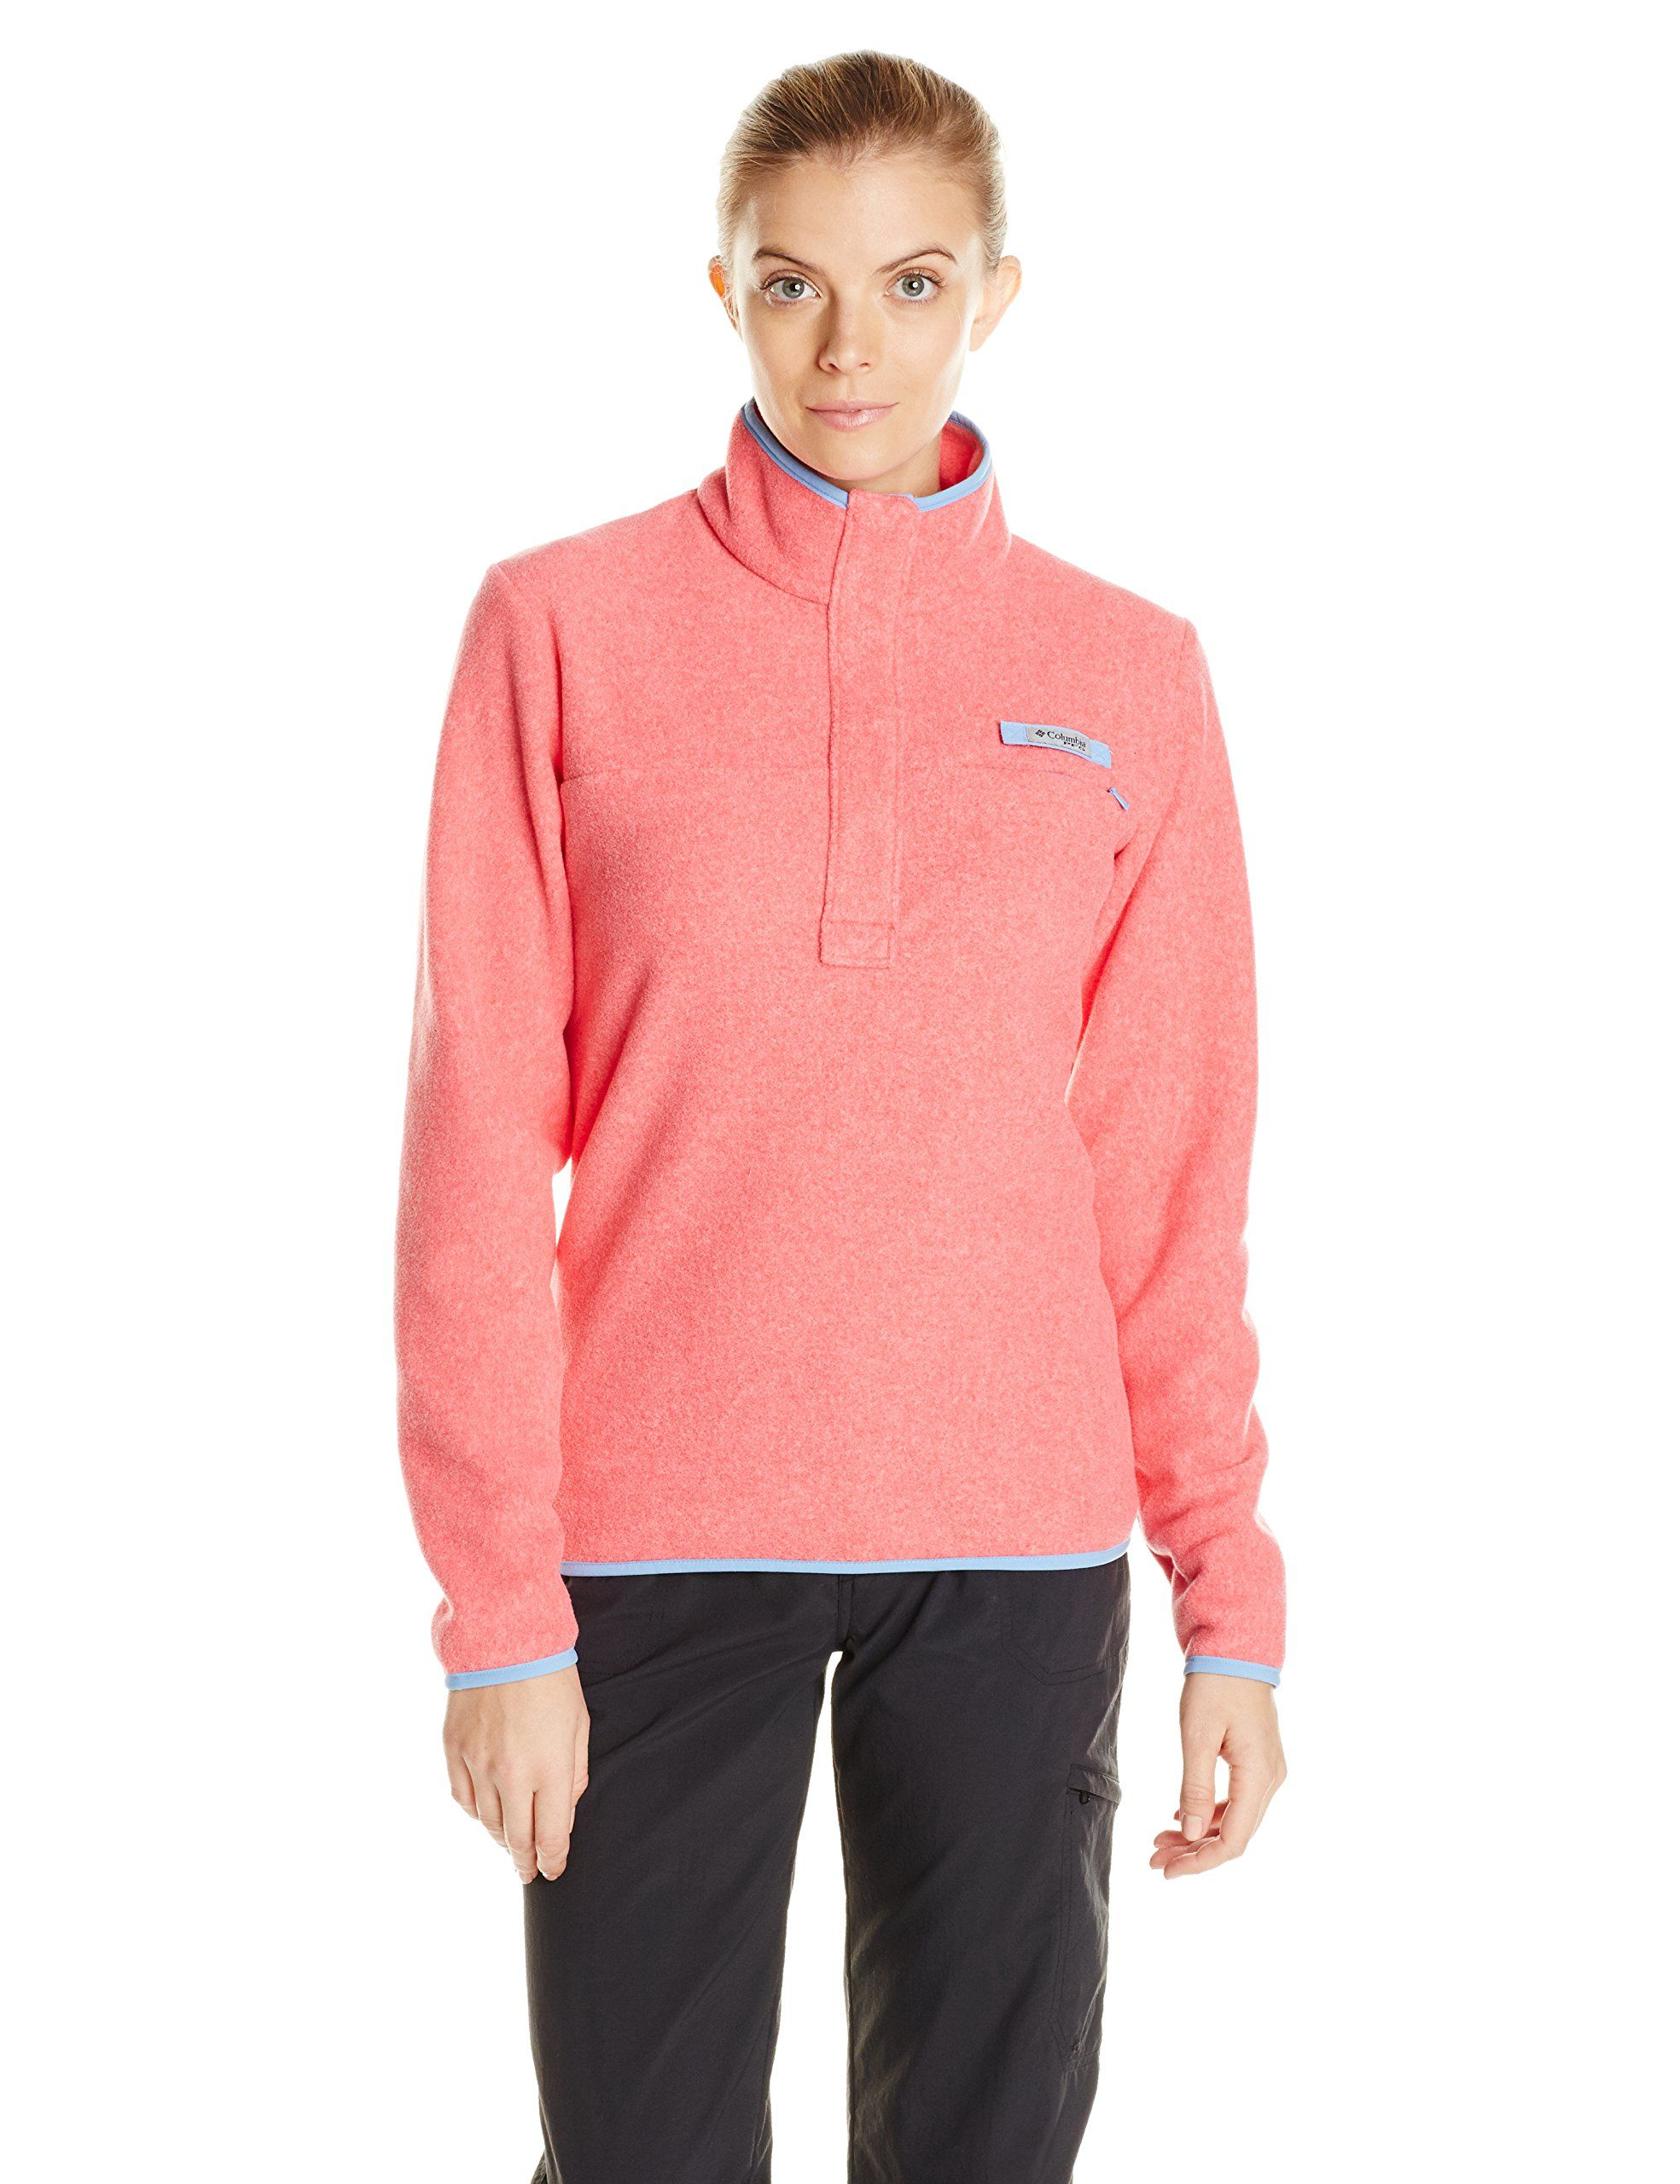 Amazon.com: Columbia Sportswear Women's Harborside Fleece Pullover ...